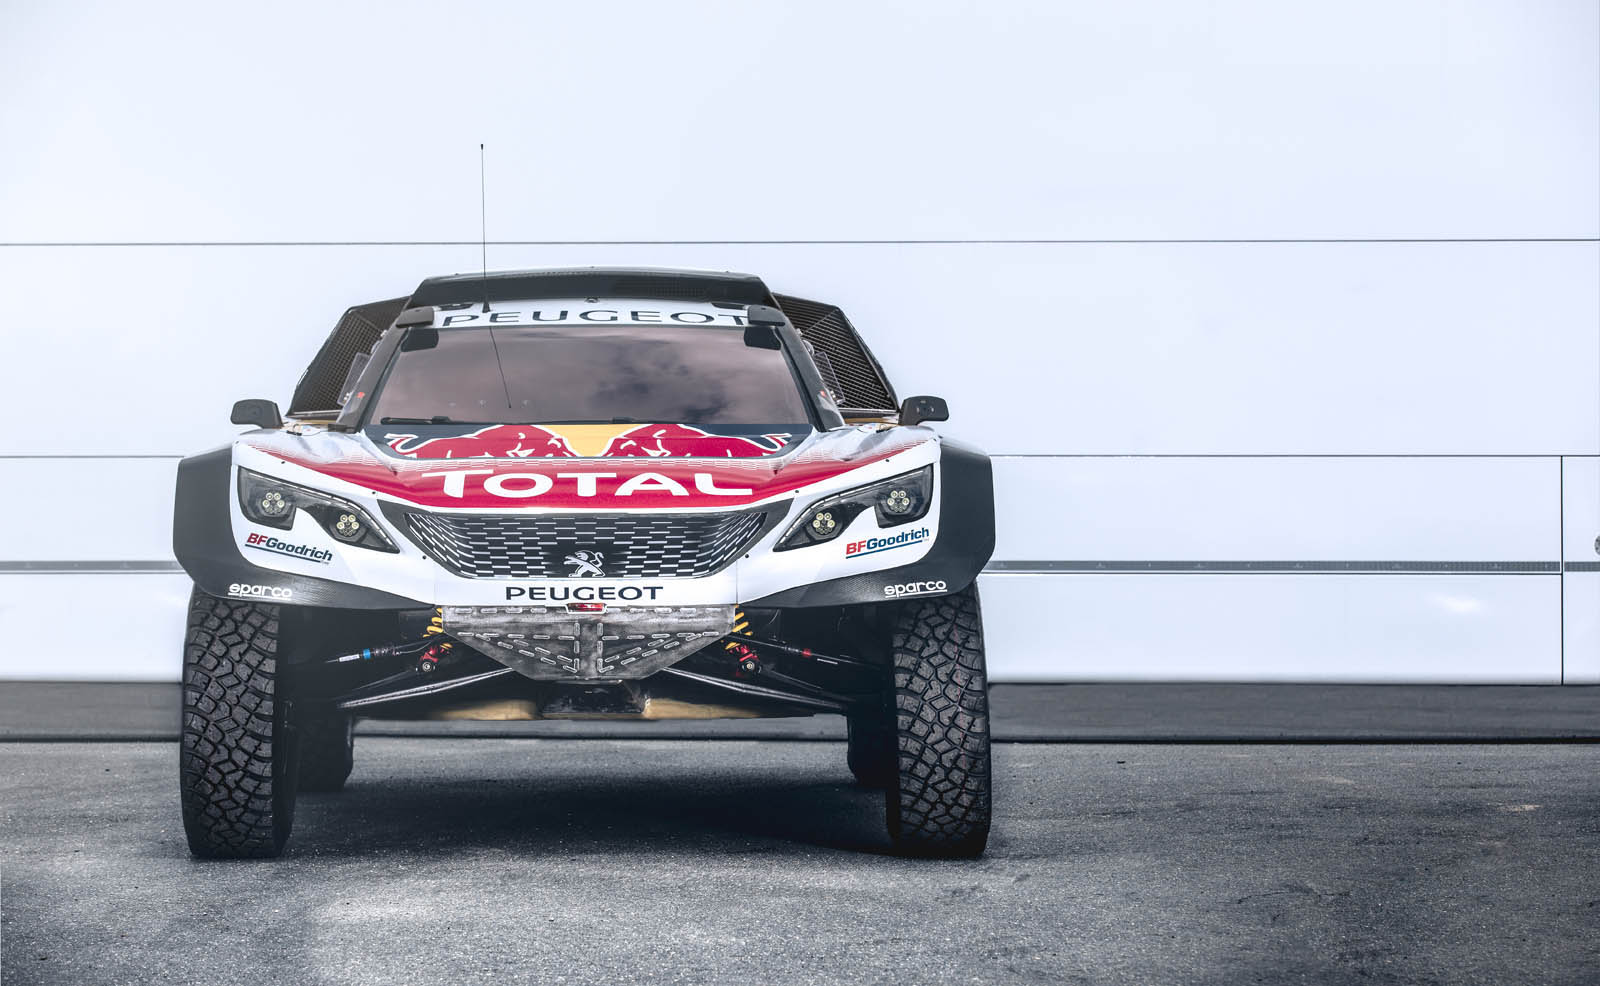 peugeot aims to win 3rd consecutive dakar rally with new 3008dkr maxi 30 pics video carscoops. Black Bedroom Furniture Sets. Home Design Ideas